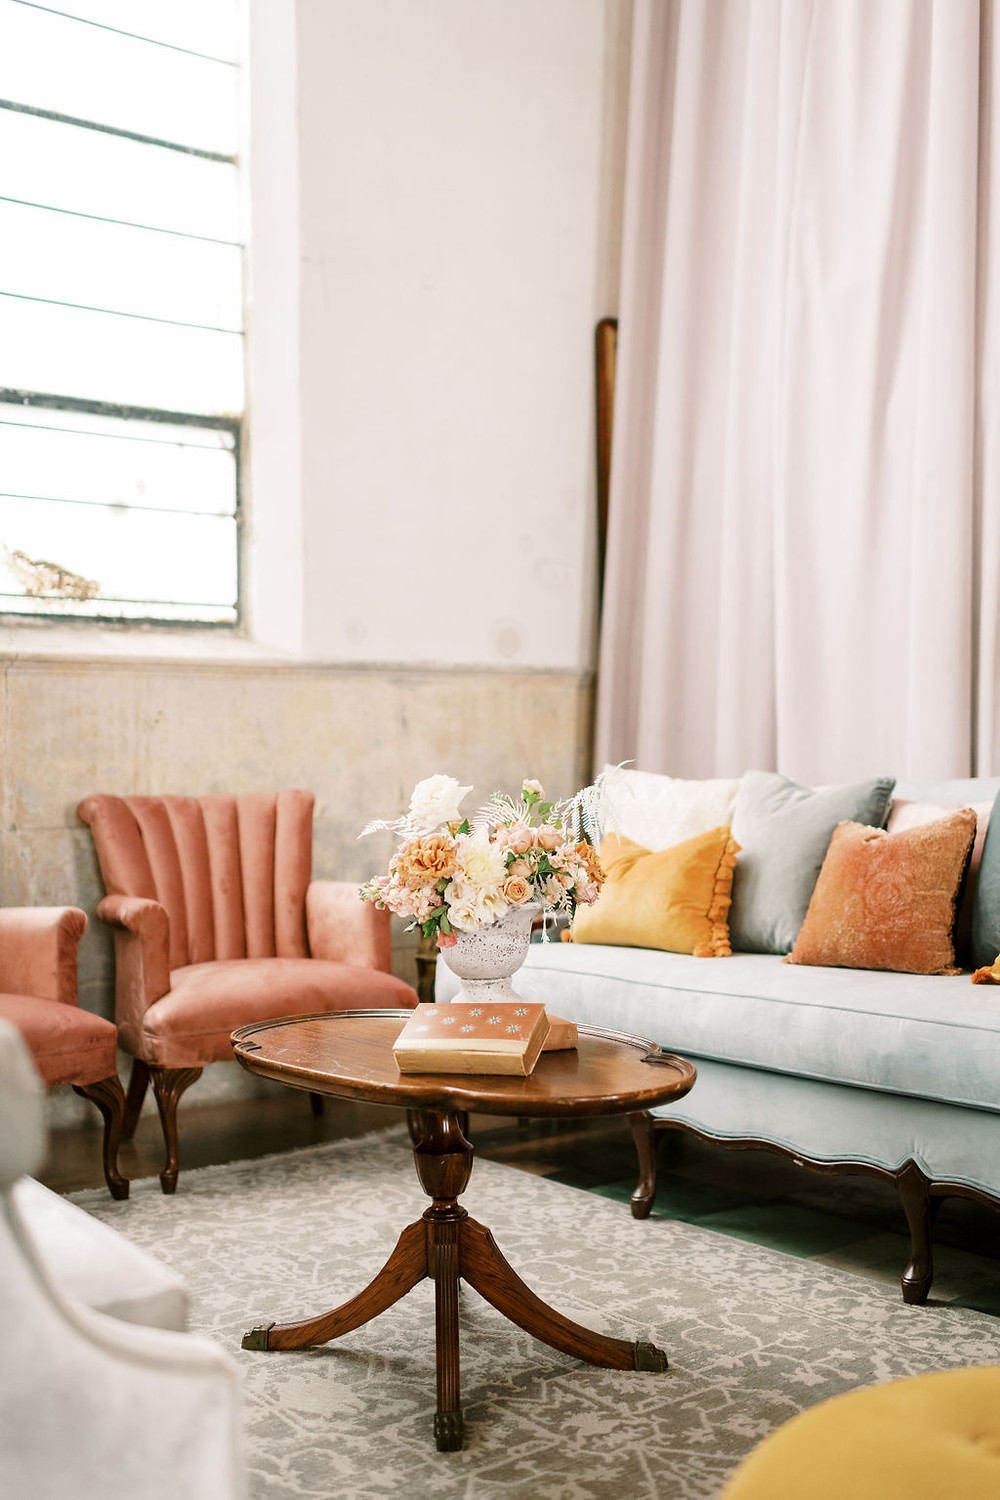 Lounge Space and Seating for Bridgerton Inspired Wedding at the Marigny Opera House in New Orleans with decor and vintage furniture by Lovegood Rentals with Assorted Antique Furniture